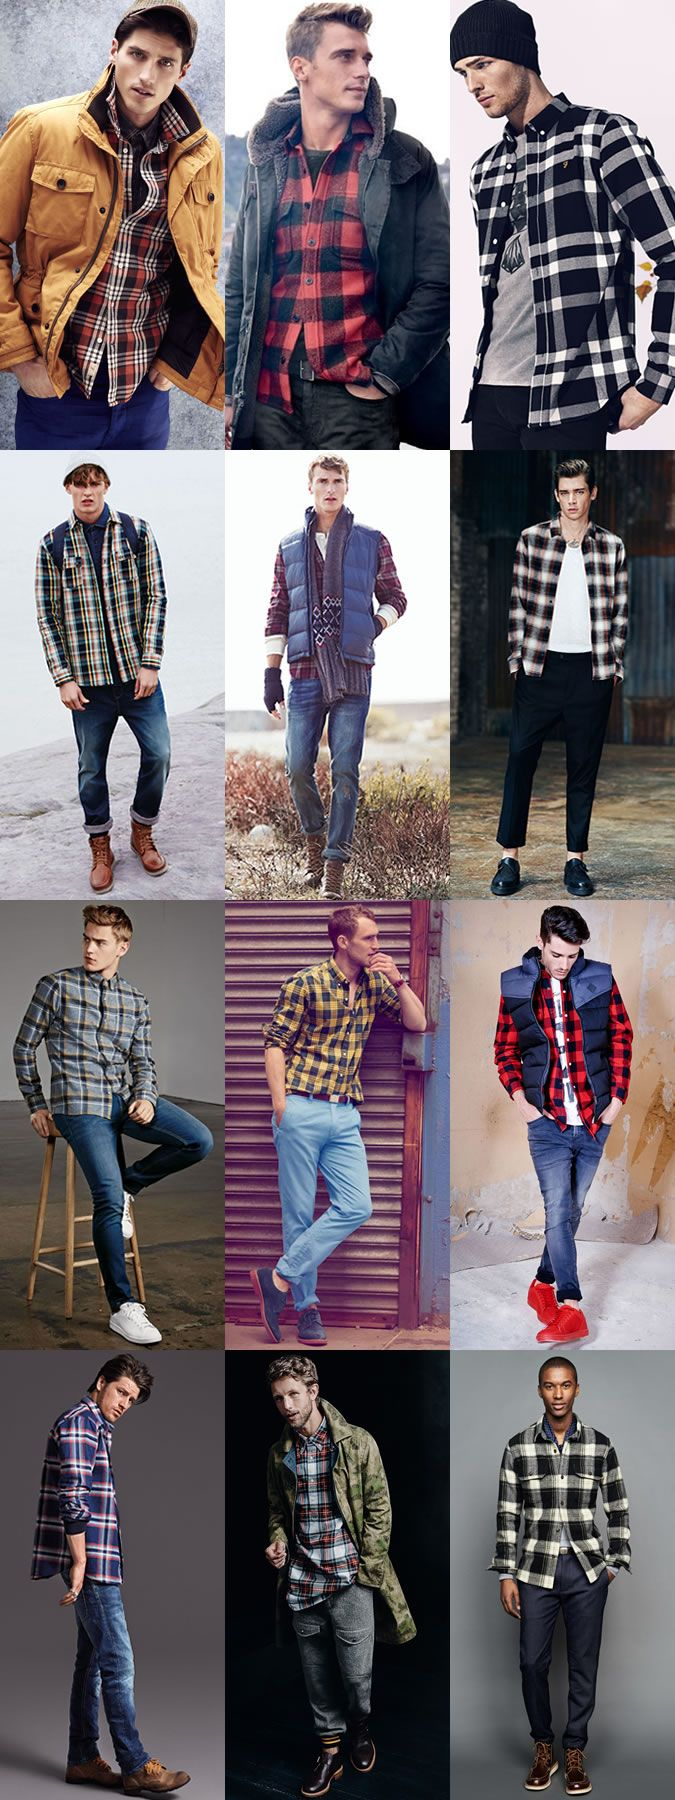 Flannel and denim jacket outfit  Pablo Garetto pablogaretto on Pinterest